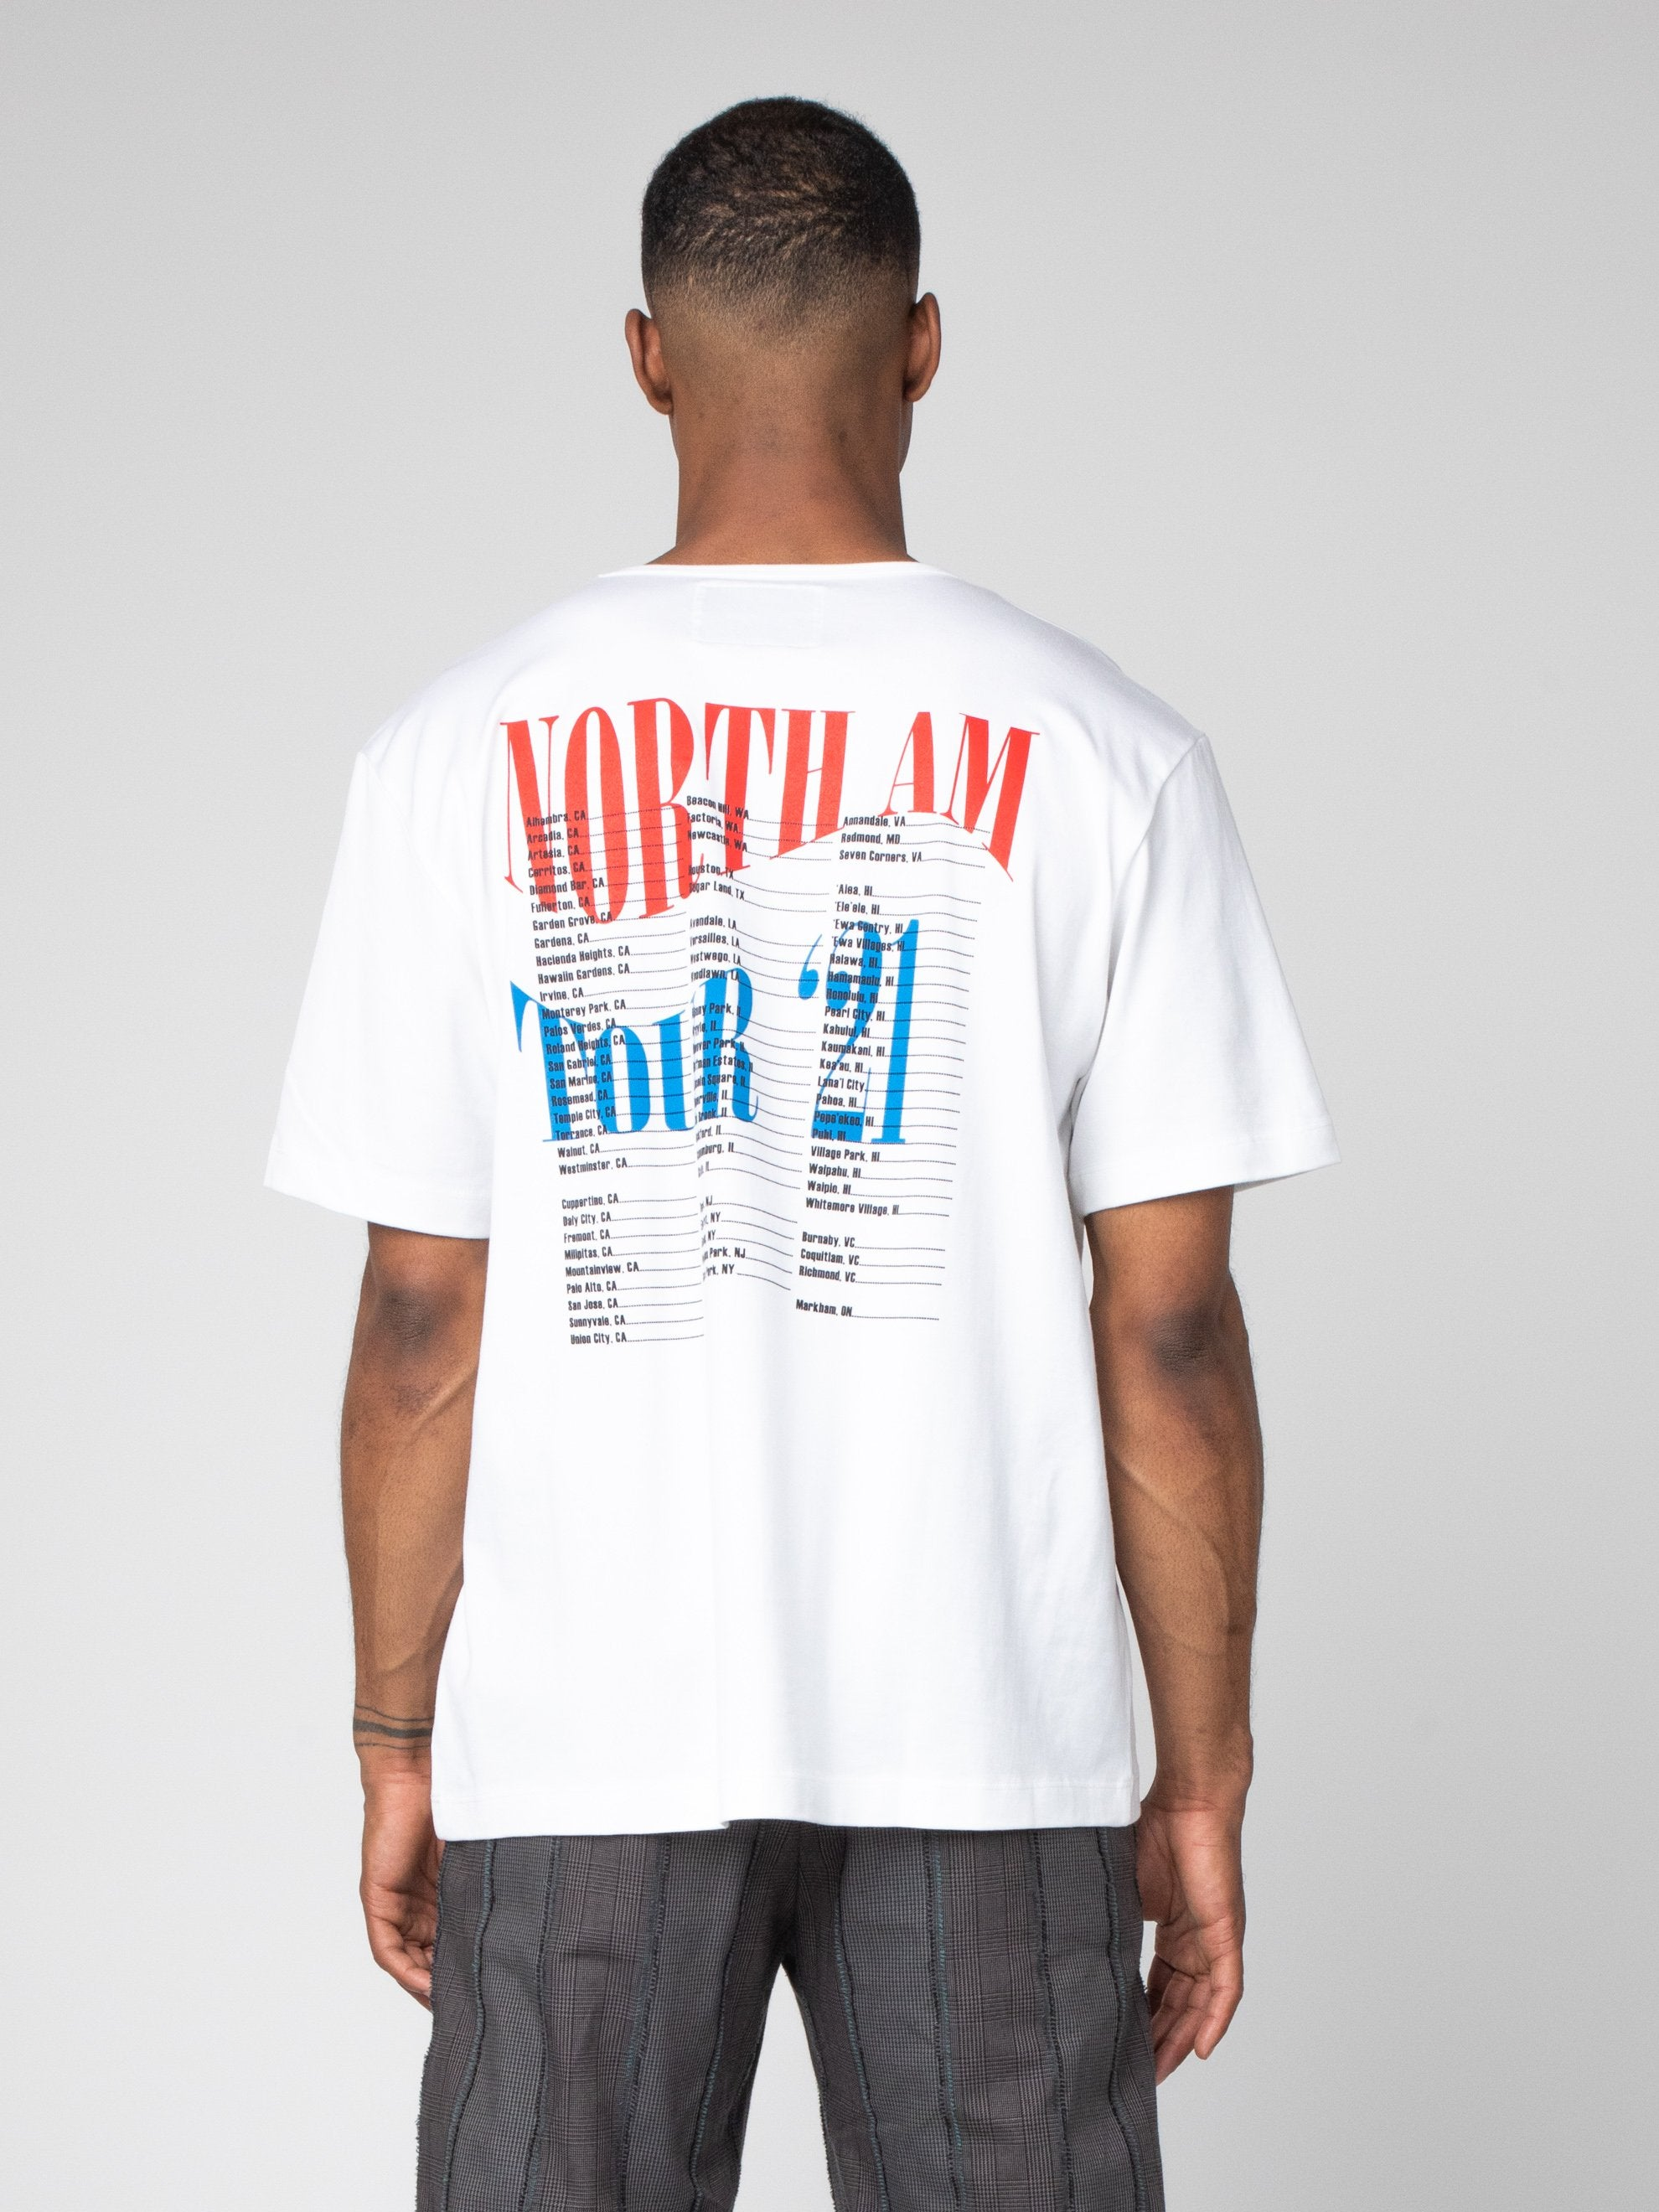 North Am Tour Tee